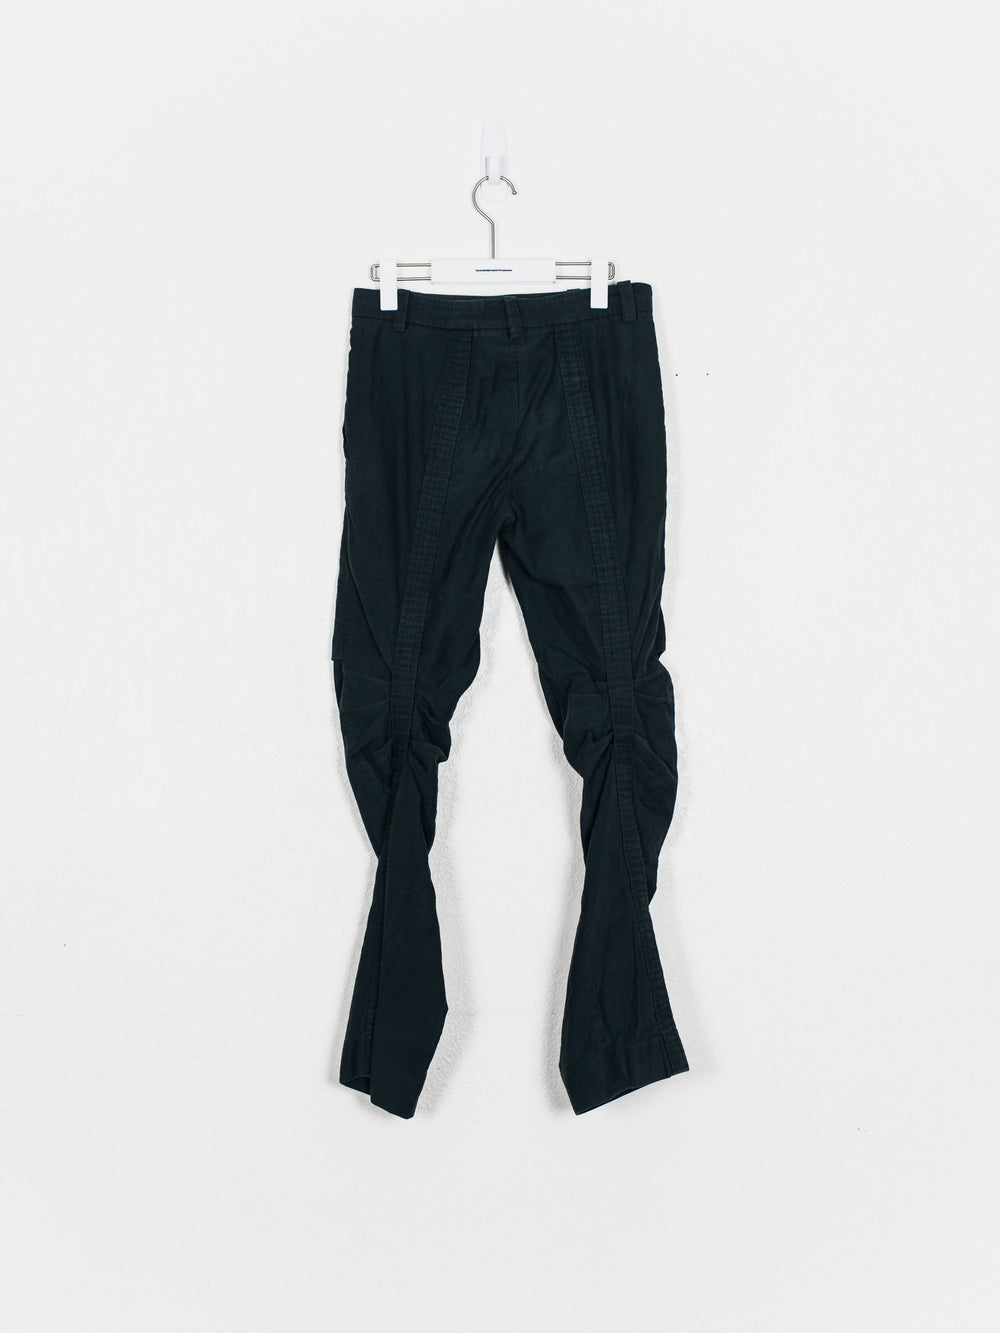 Ann Demeulemeester Anatomic Strap Jeans